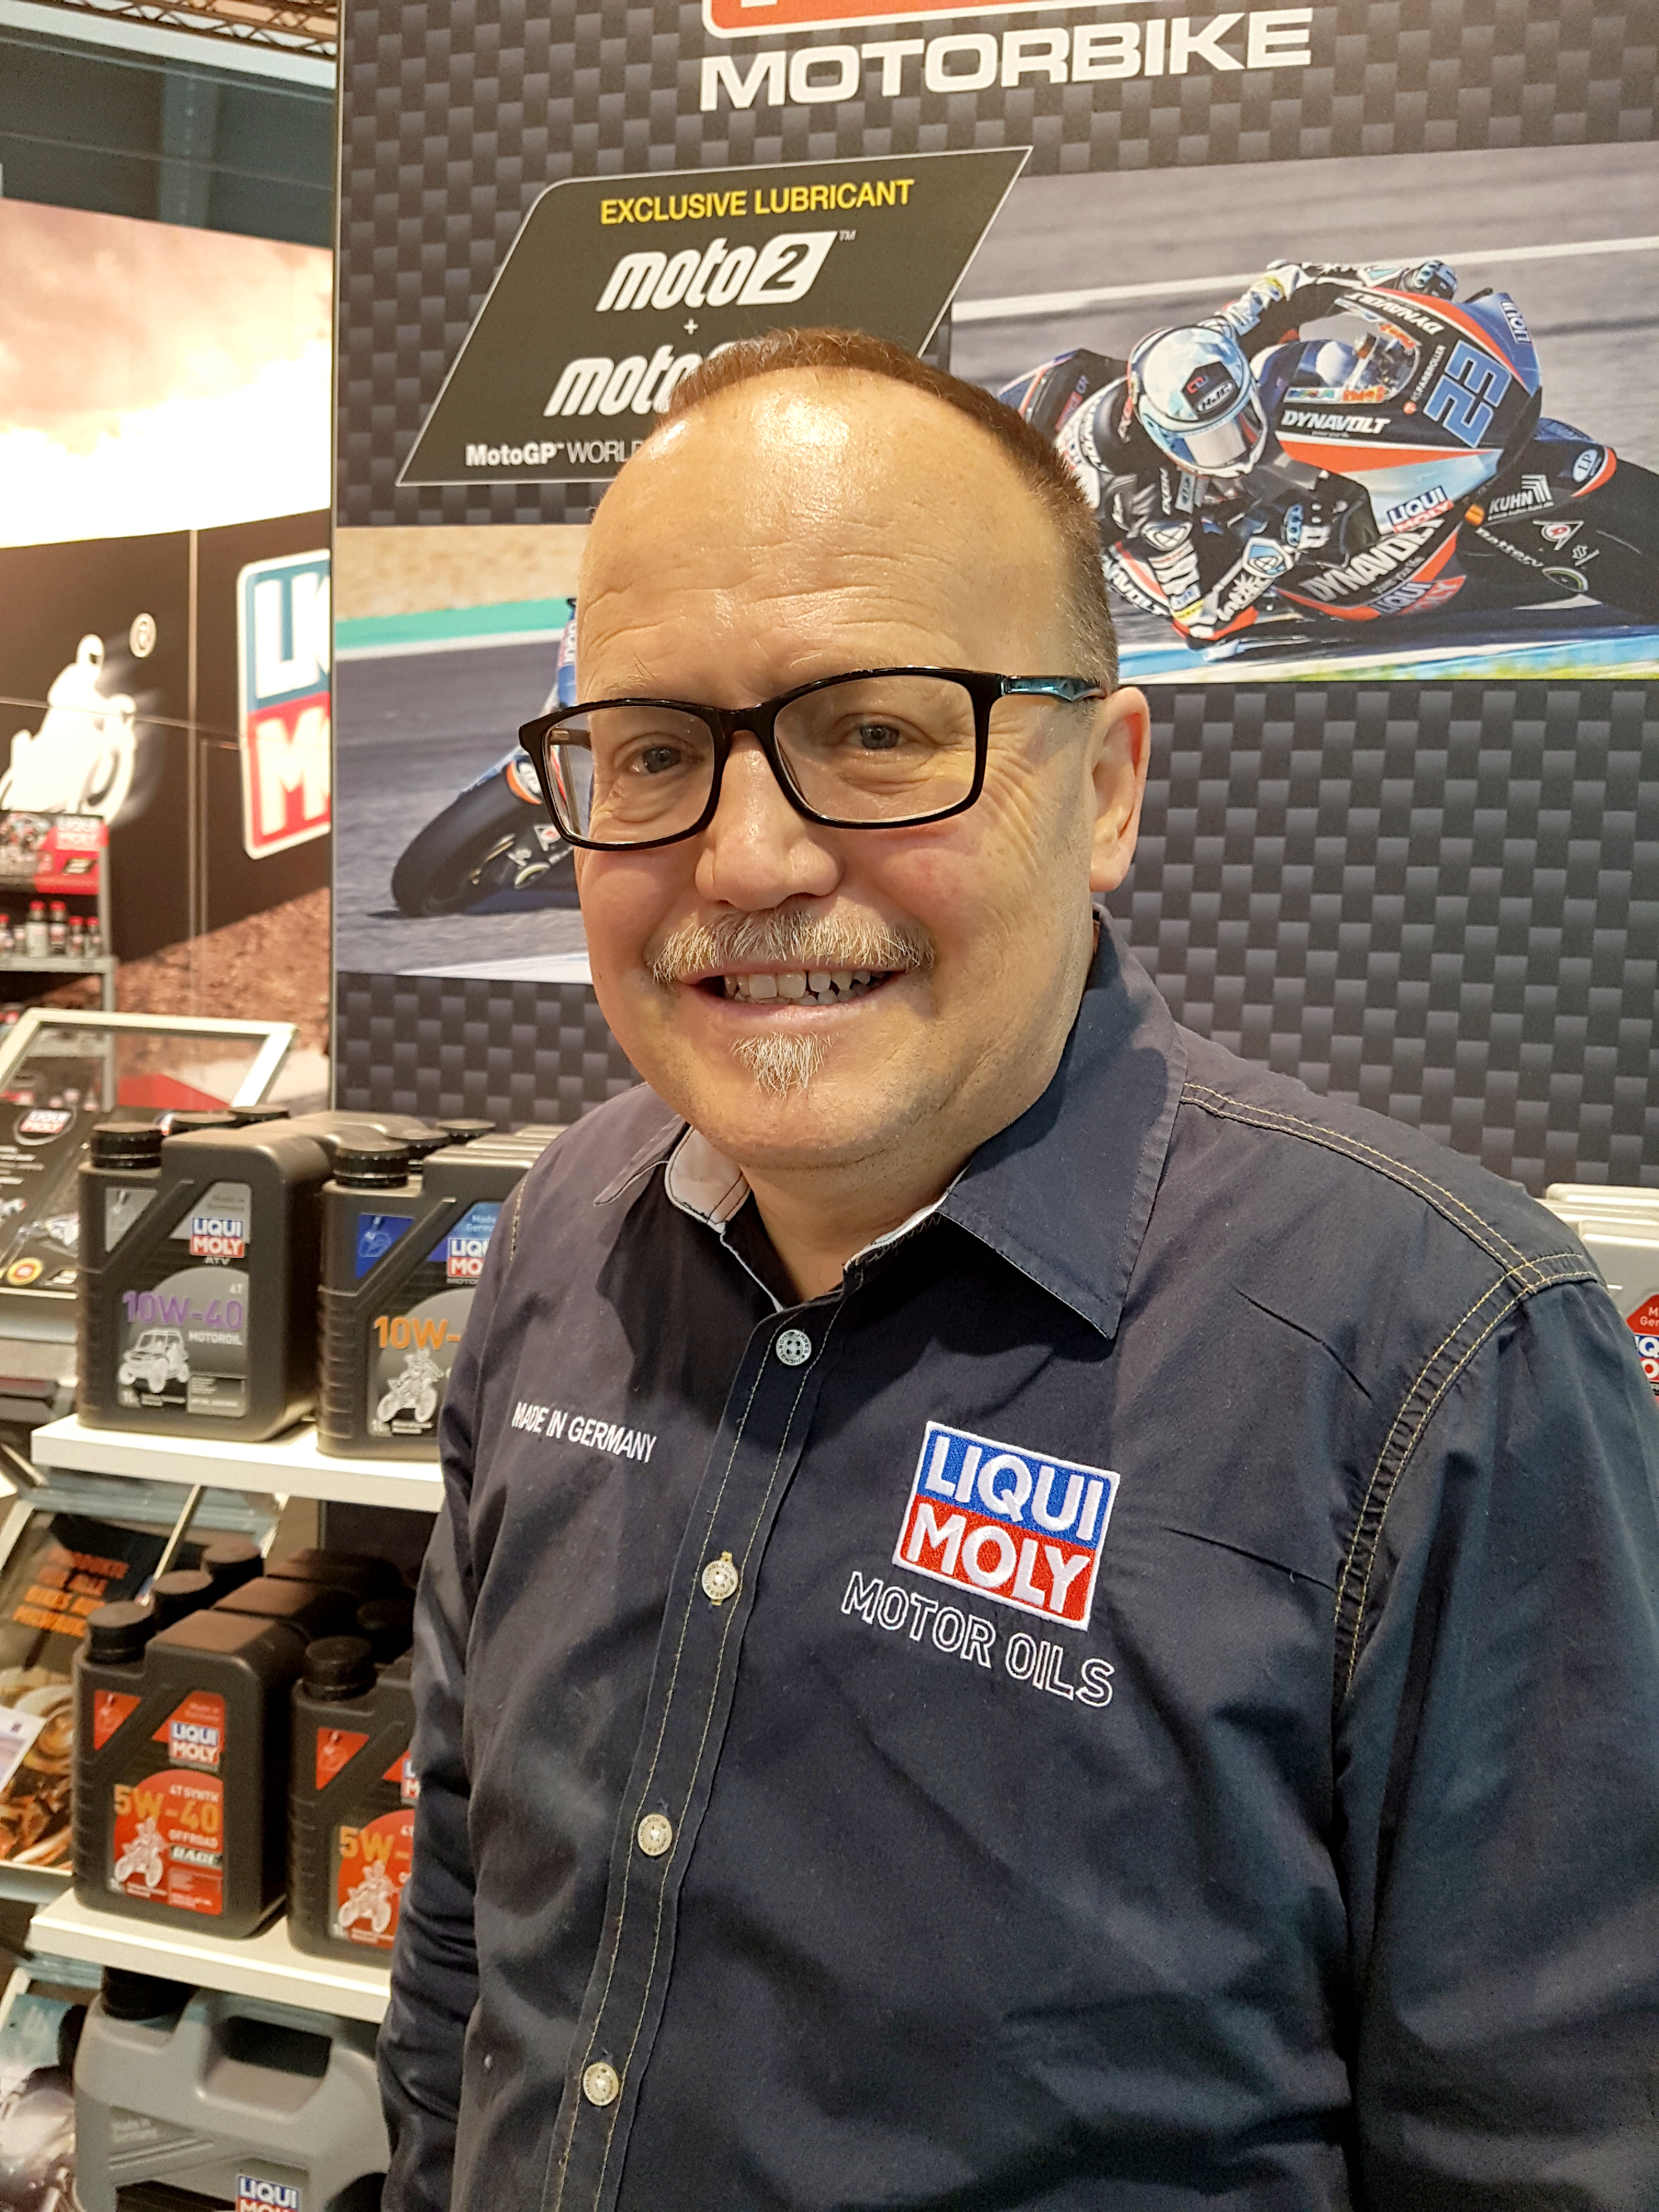 https://www.liqui-moly.com/fileadmin/user_upload/Presse/Pressemitteilungen_DE/2019/02/Carlos_Trave_2019.jpg